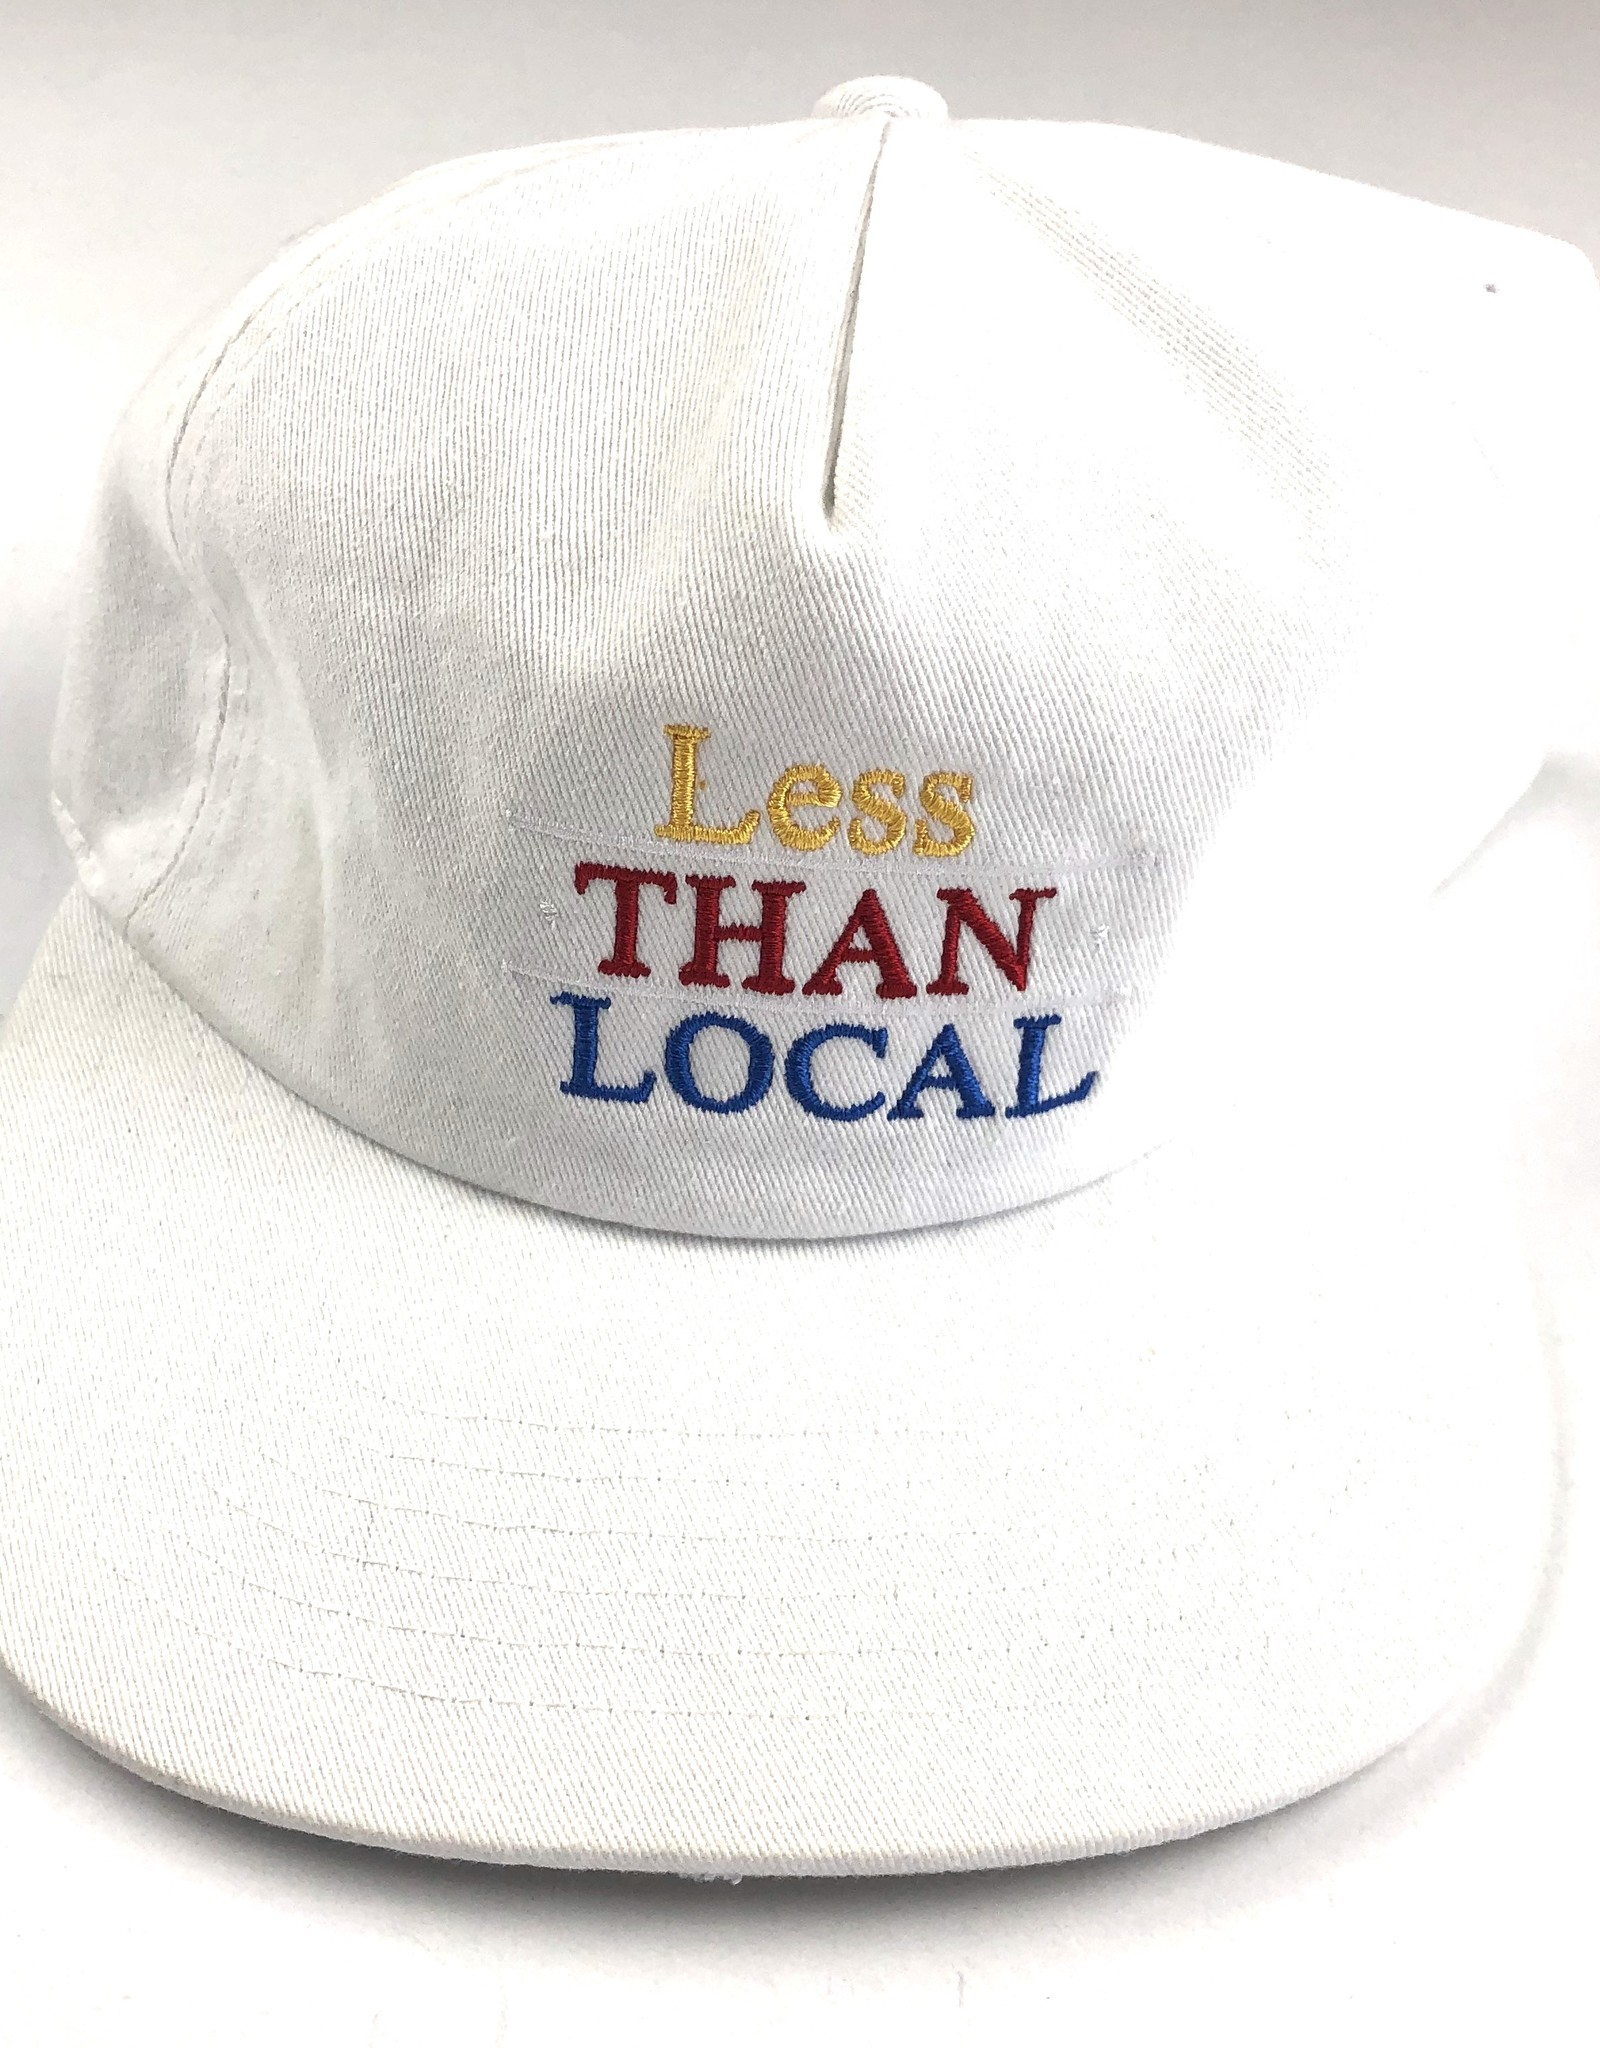 LESS THAN LOCAL LESS THAN LOCAL WONDER HAT - (ALL COLORS)